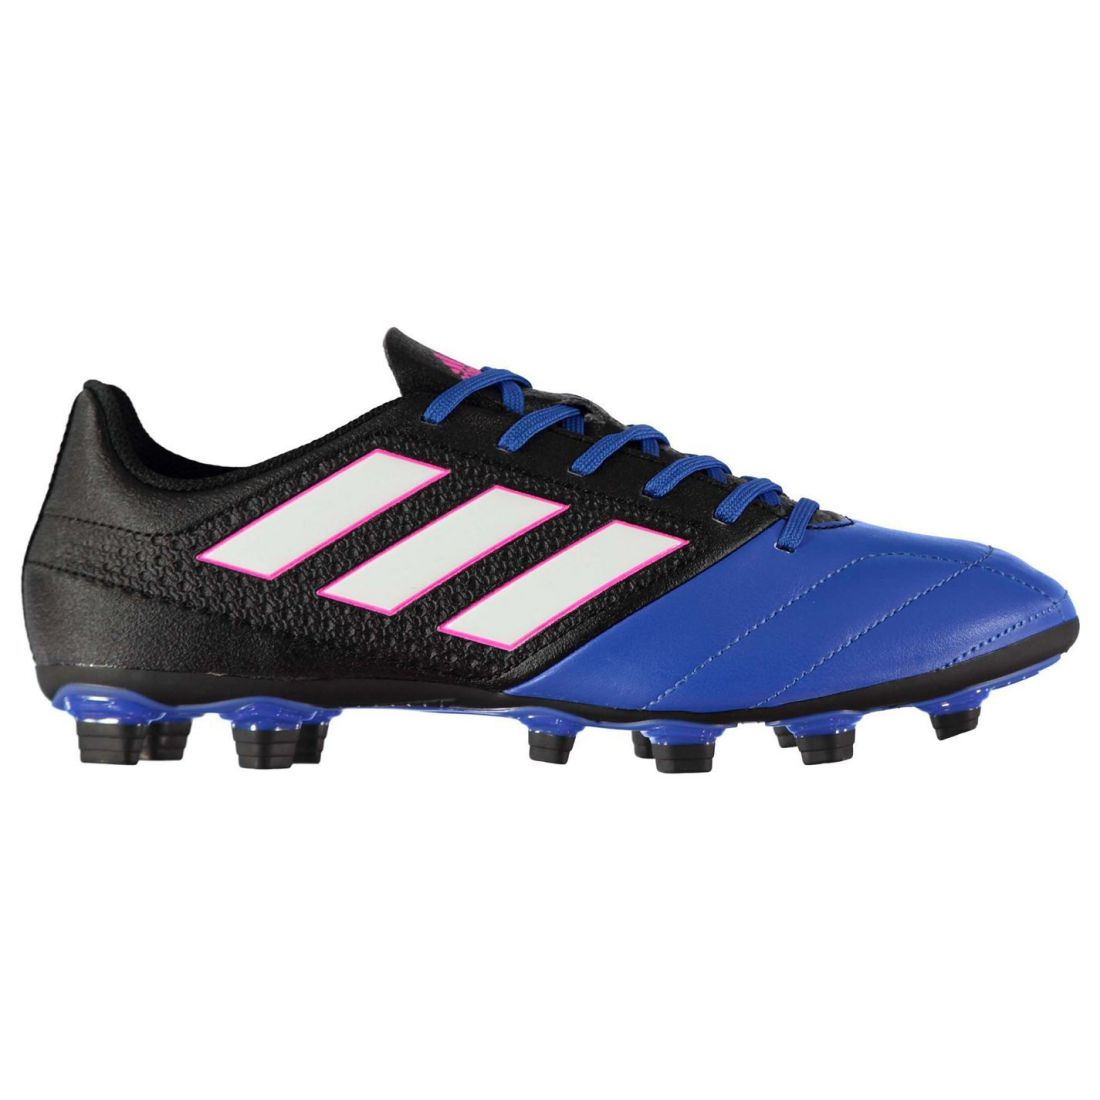 online store 40d6f fc987 Details about adidas Men Ace 17.4 FG Football Boots Shoes Trainers Sports  Flexible Lightweight